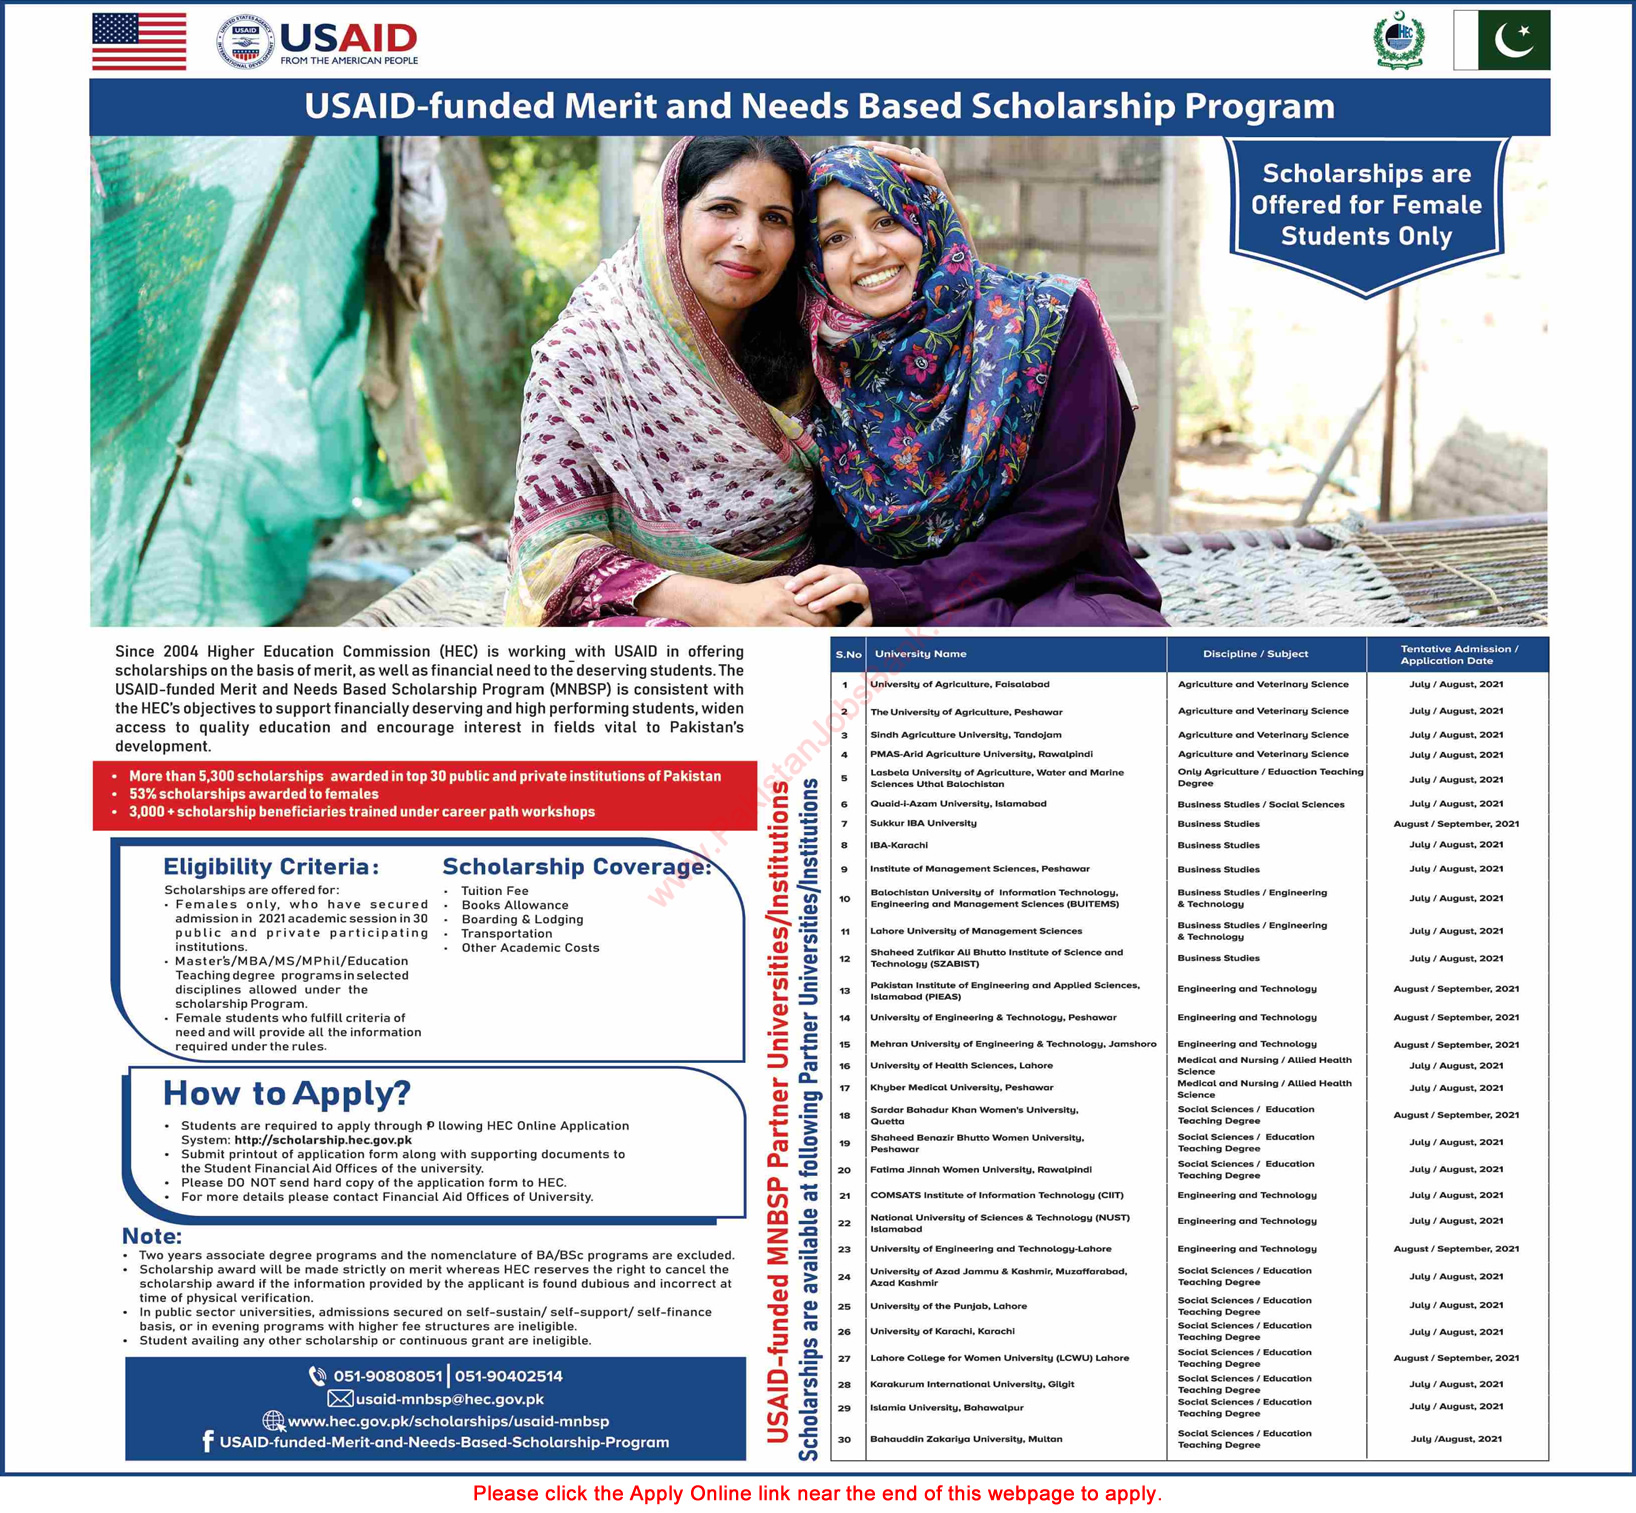 USAID Funded Merit and Needs Based Scholarship Program 2021 in Pakistan